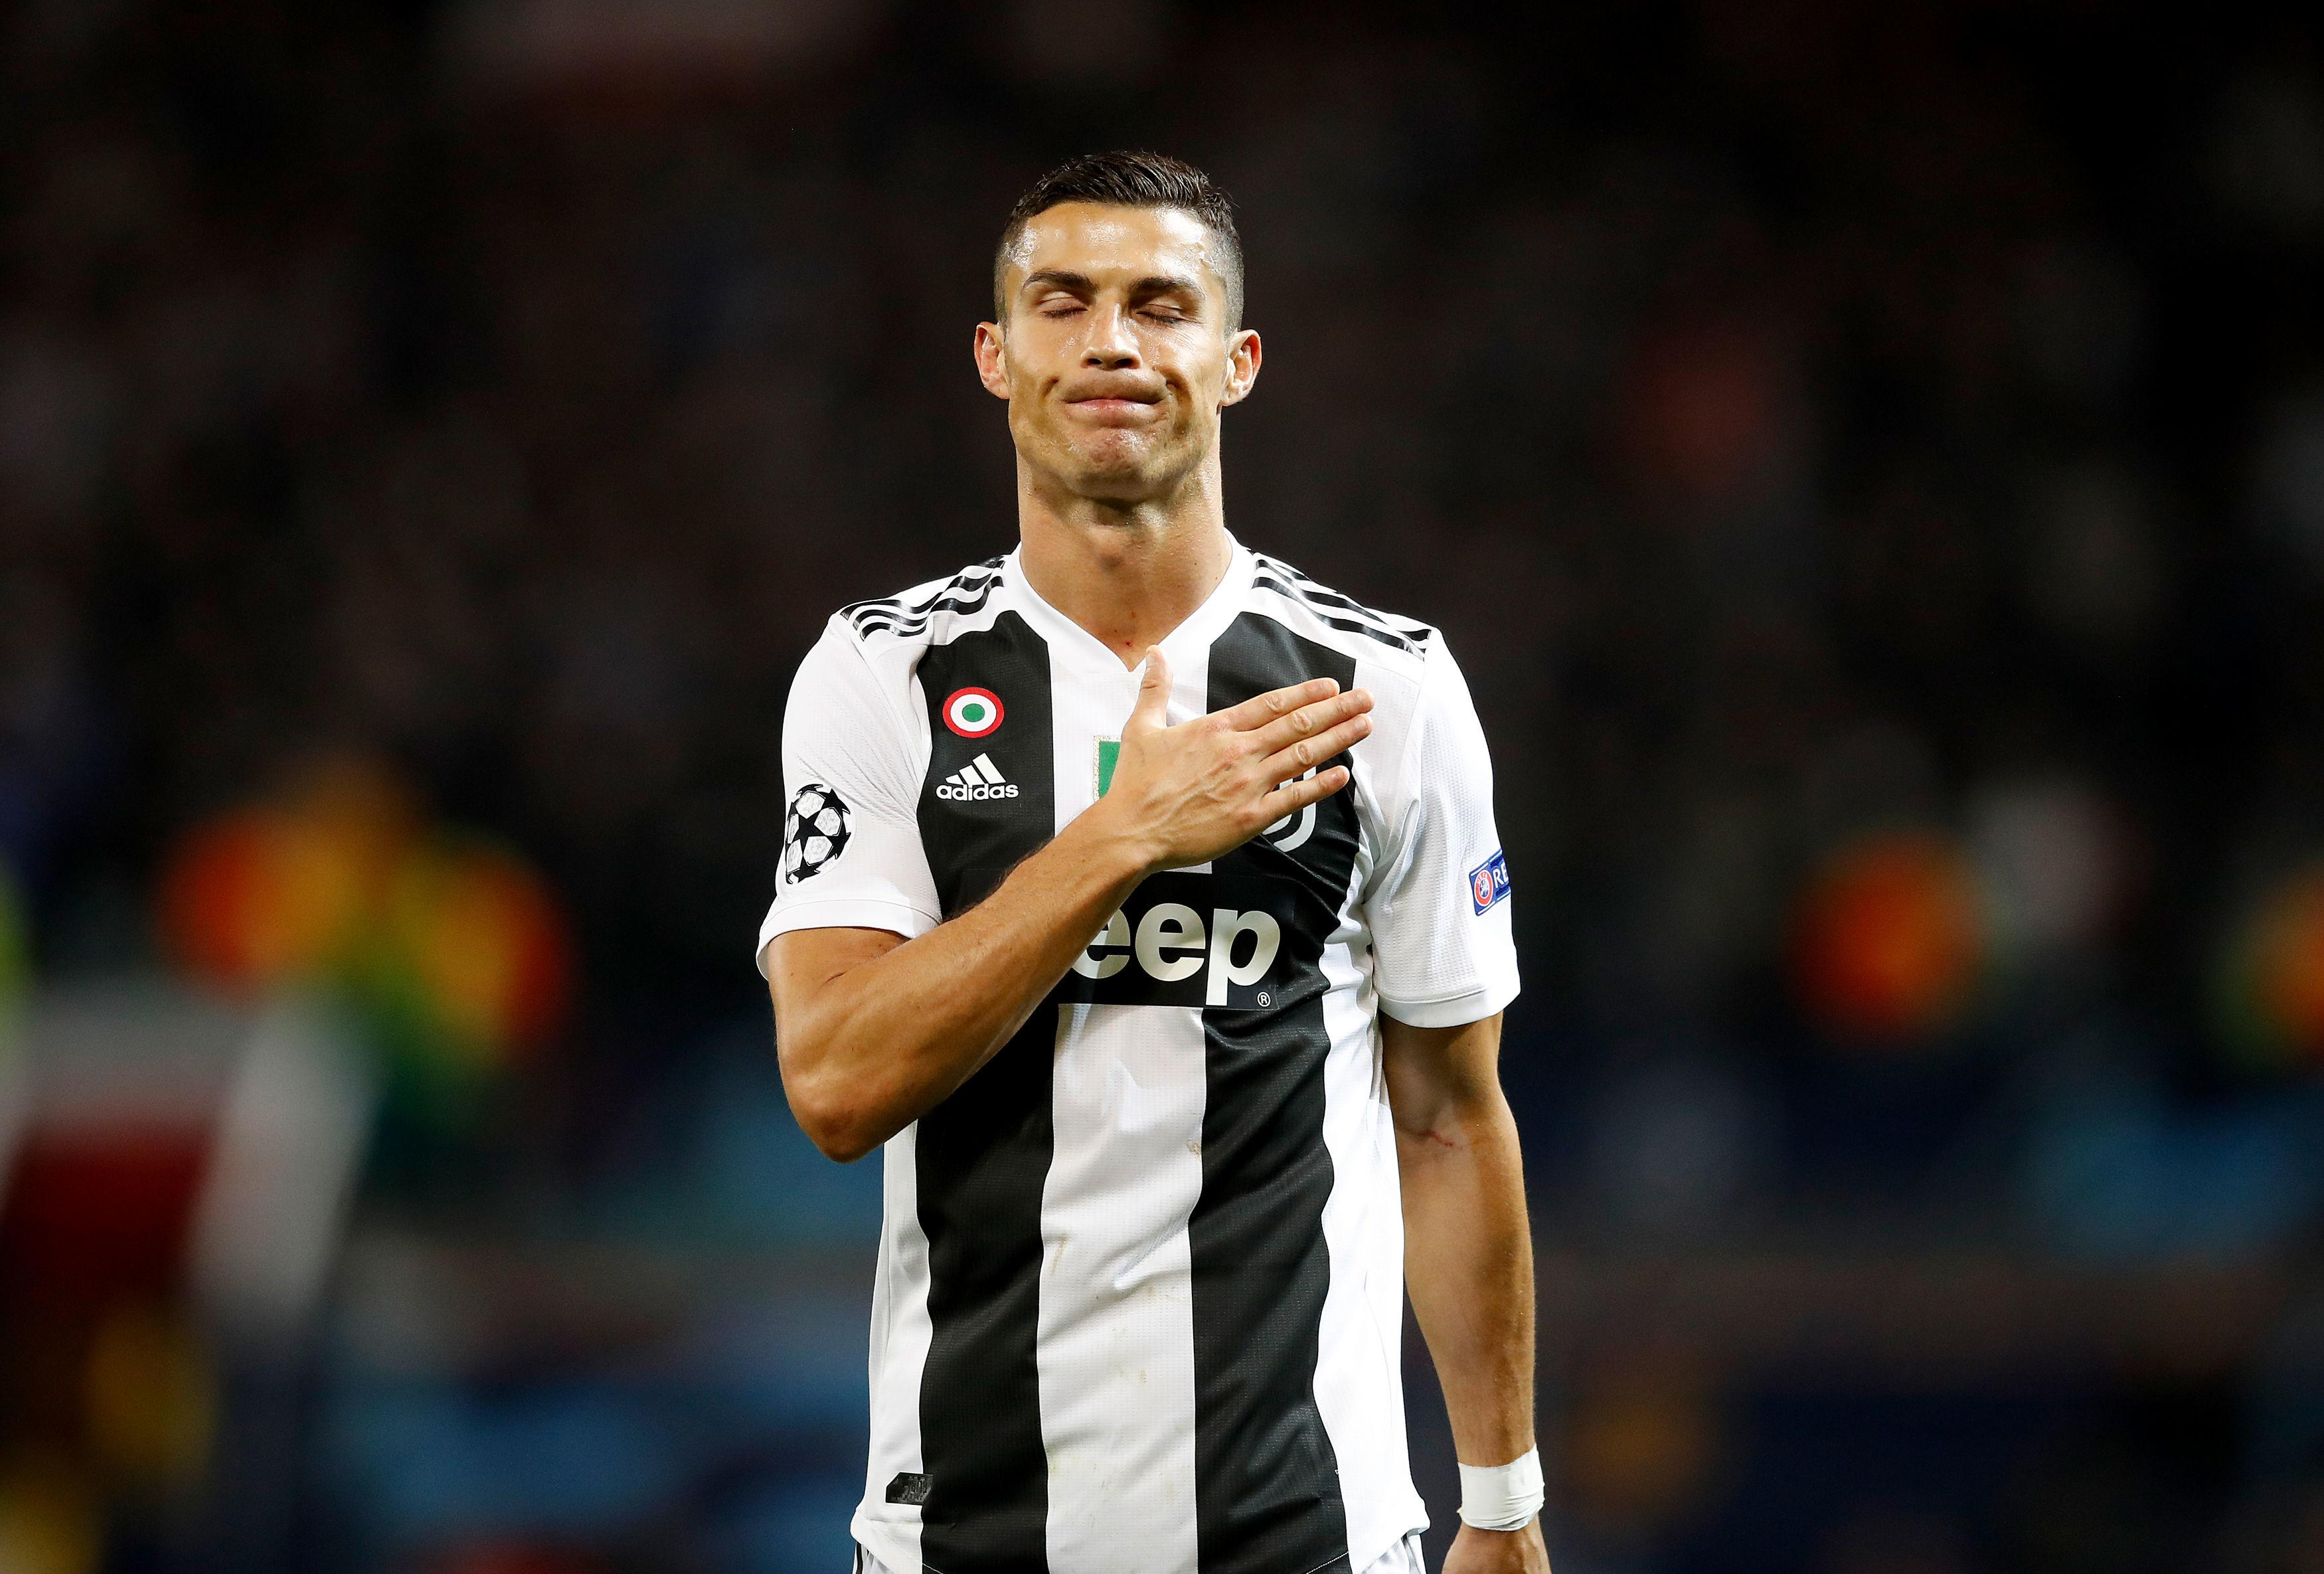 It was the Juventus fans the striker went over to first, tapping the club crest